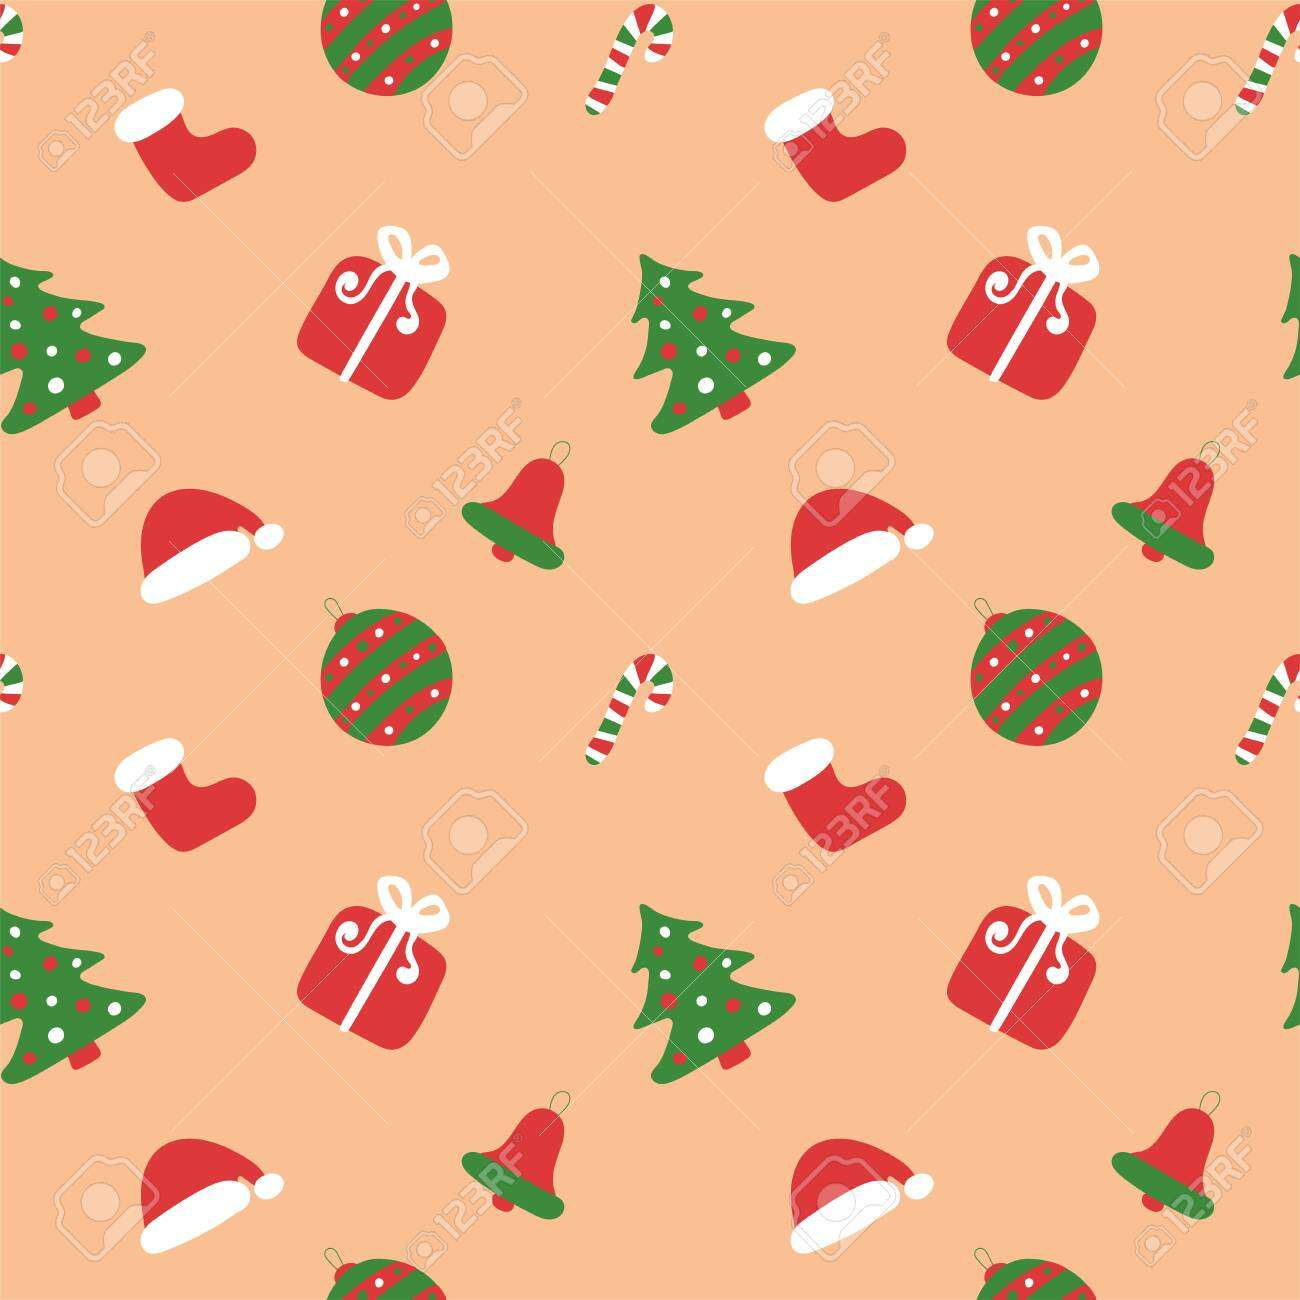 christmas kids pattern winter holiday wallpaper seamless texture for the new year santa s boot and h